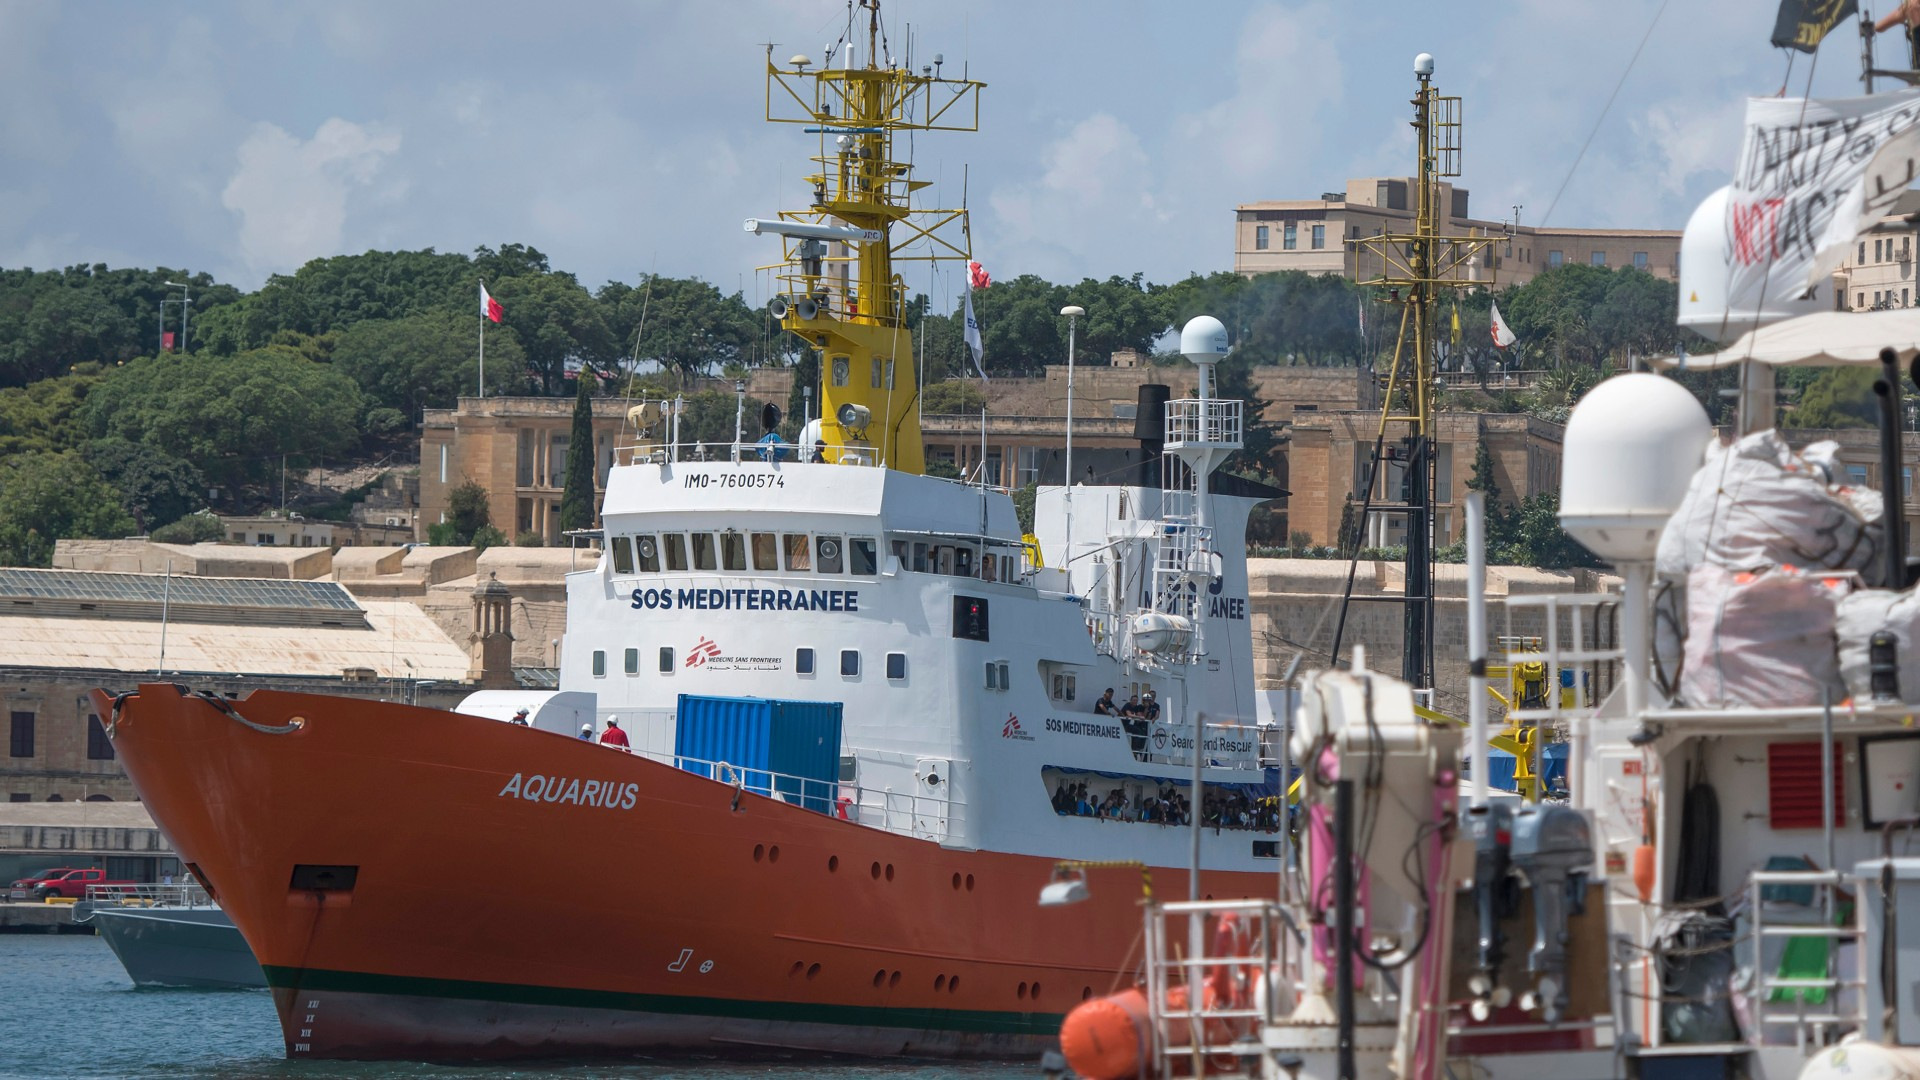 NGO ship Aquarius docked